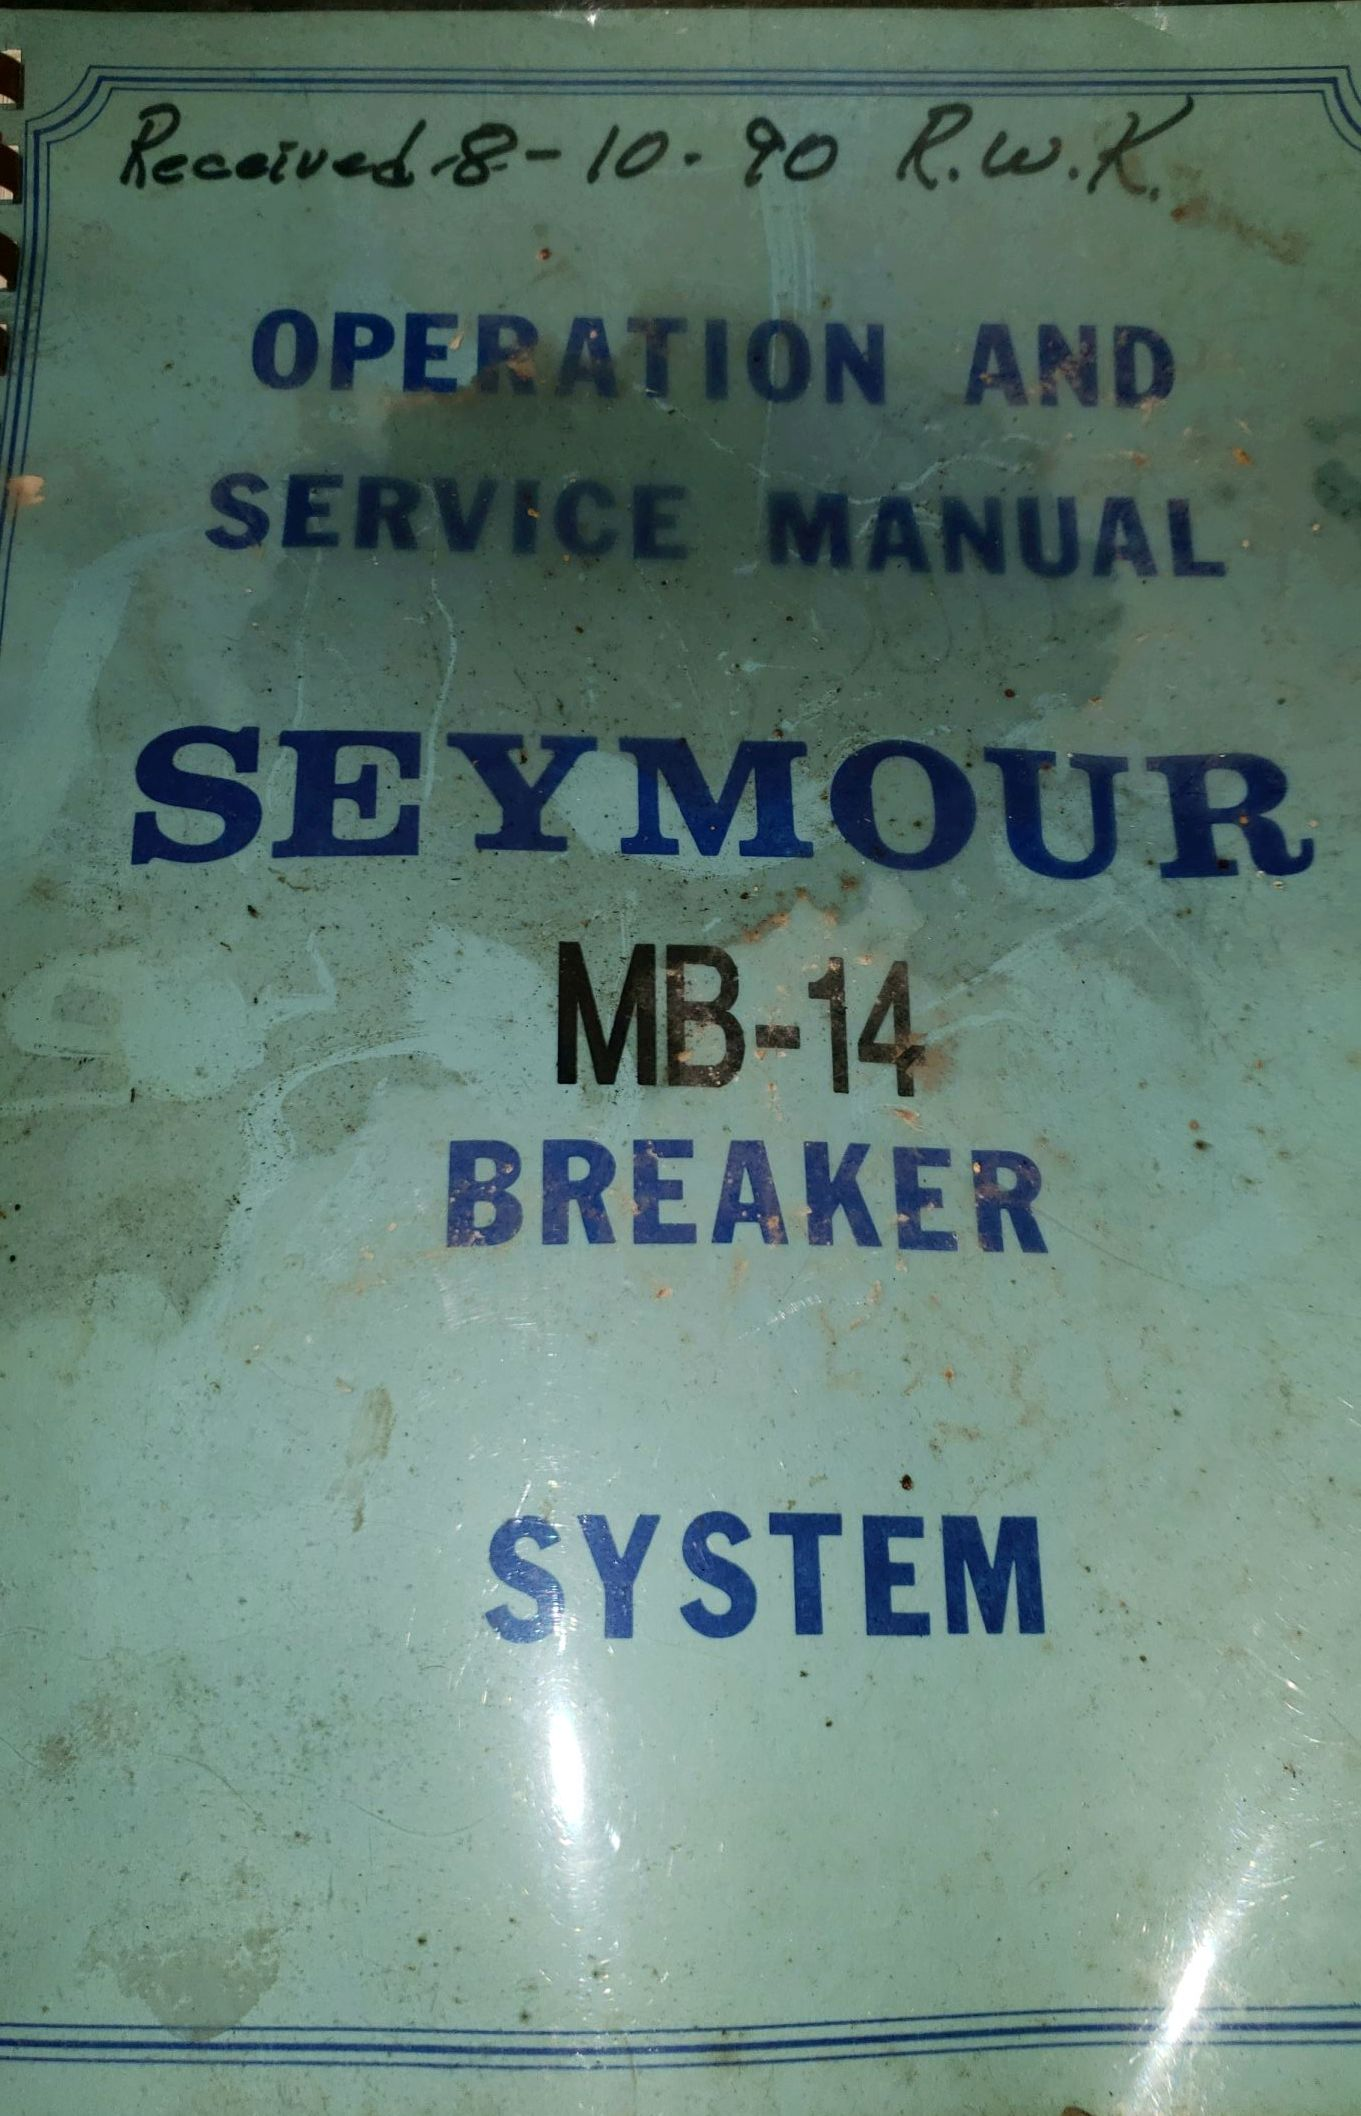 Lot 250 - Seymour Foods automatic egg cracker, model MB-14, stainless steel construction, 12 station, rotary